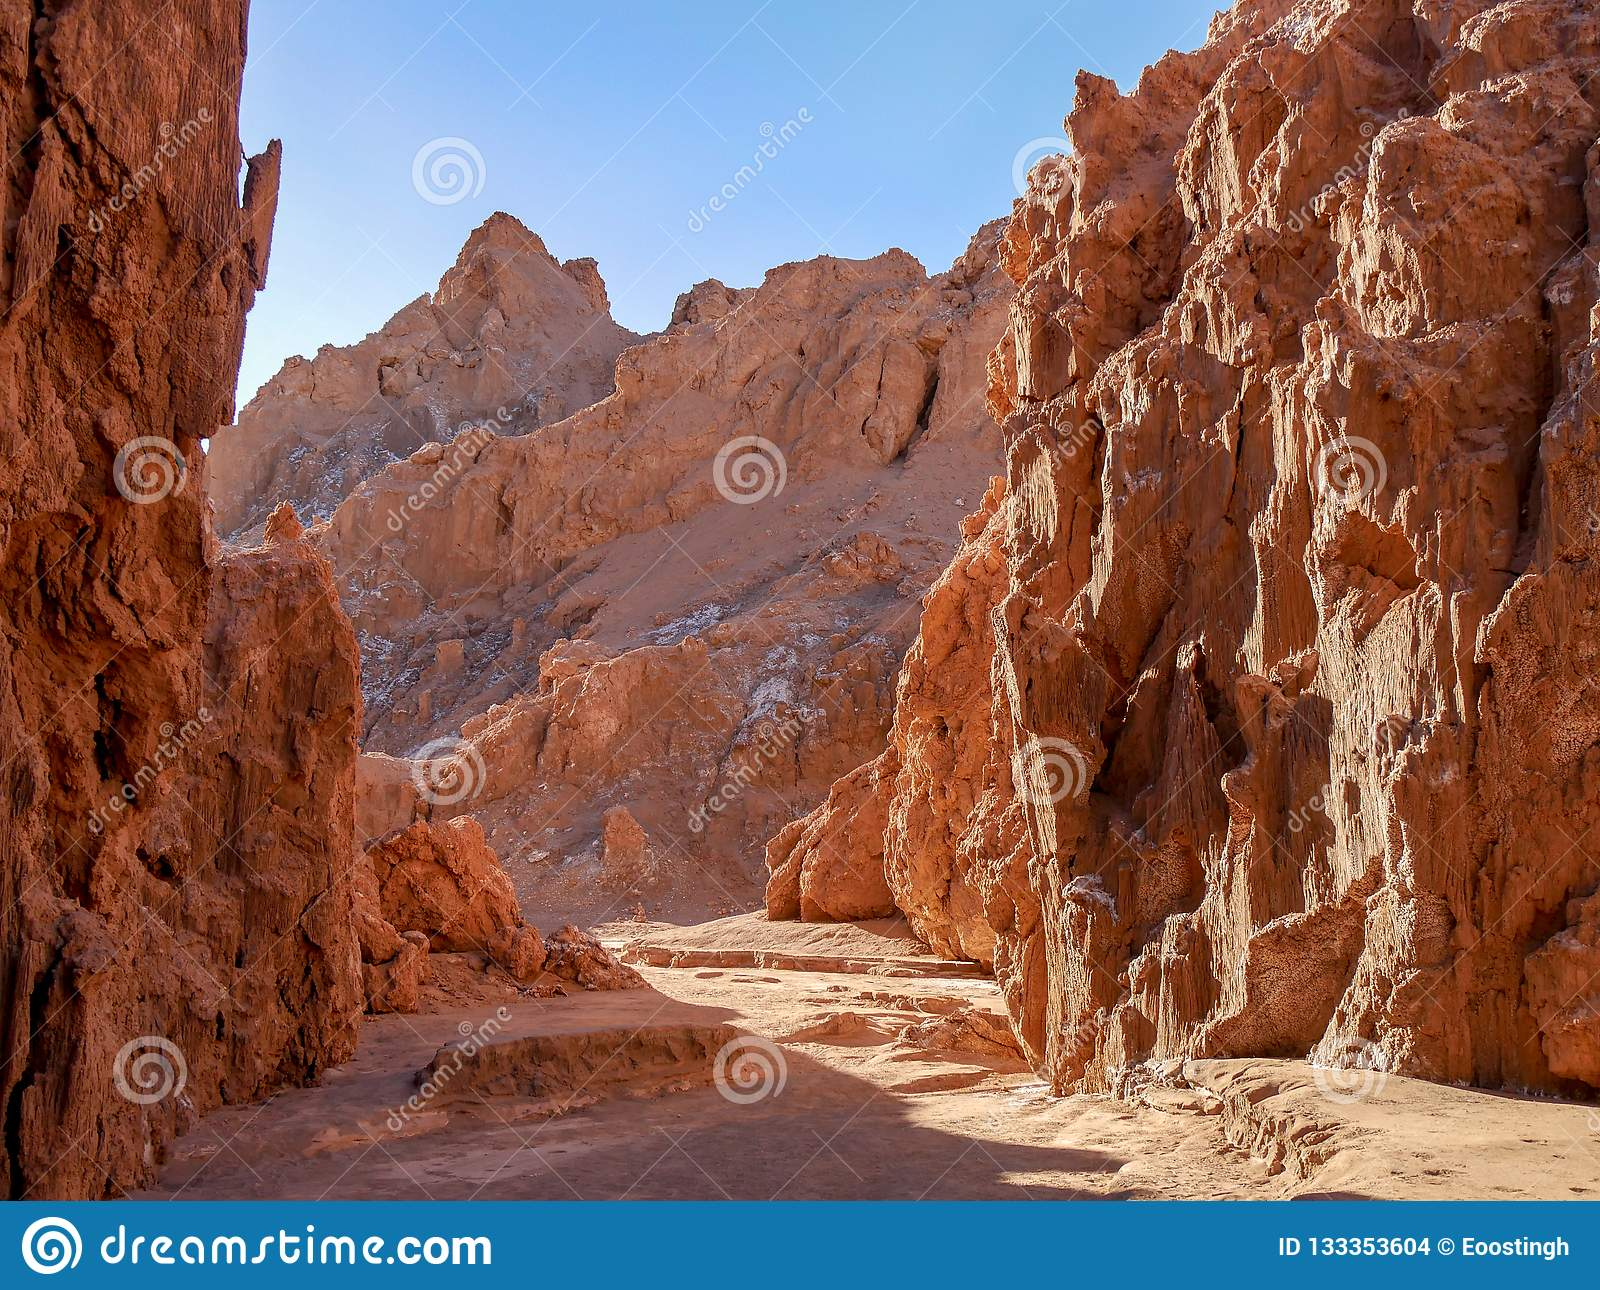 Moon Valley Valle De La Luna Chile Stock Photo Image Of Rock Stone 133353604